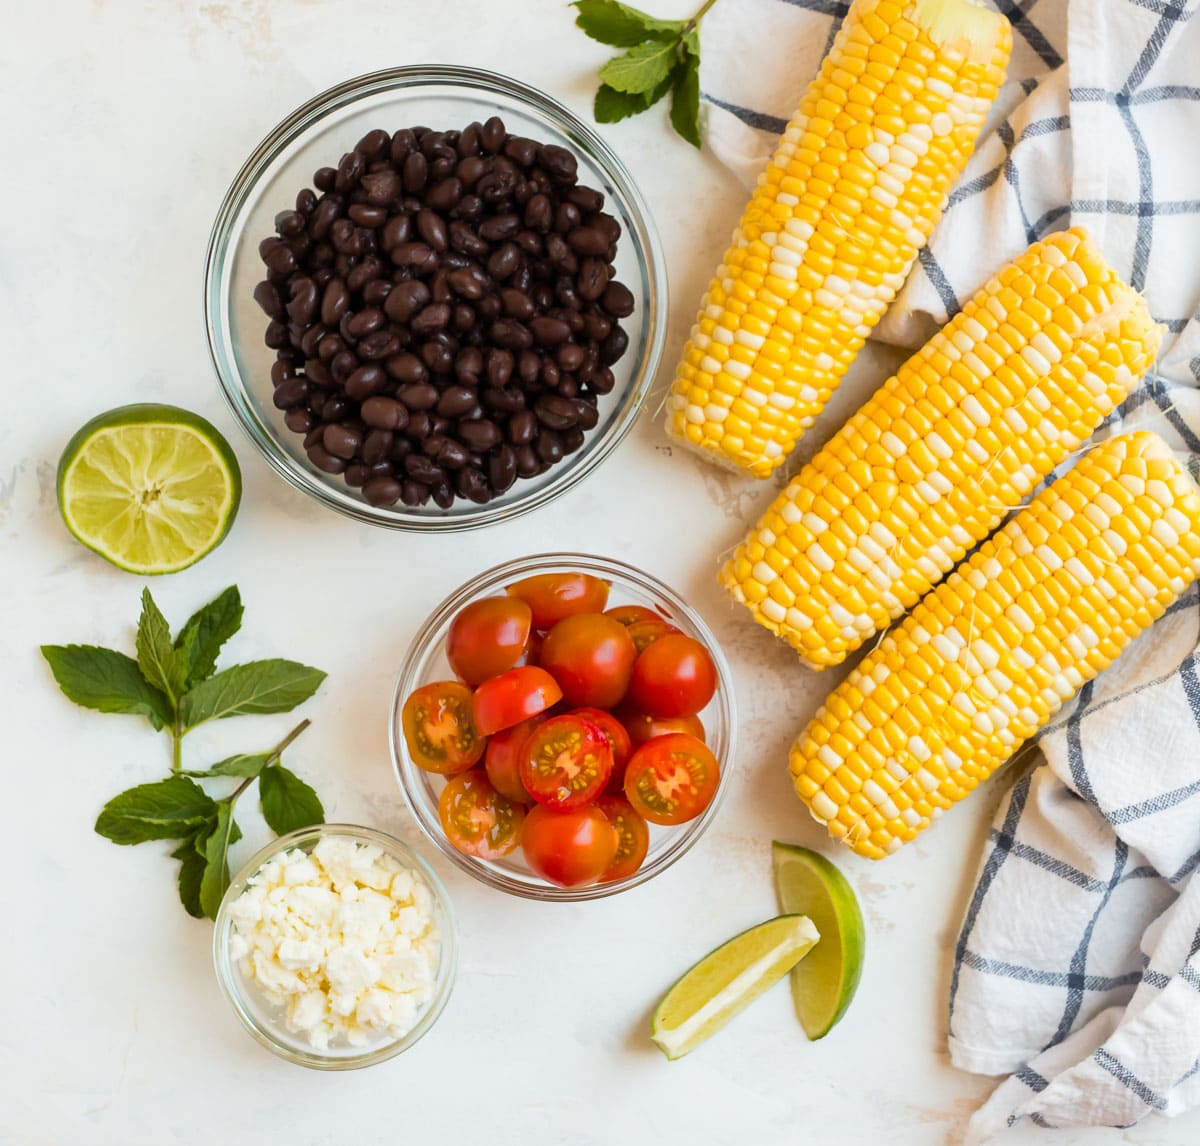 Ingredients to make black bean corn salad